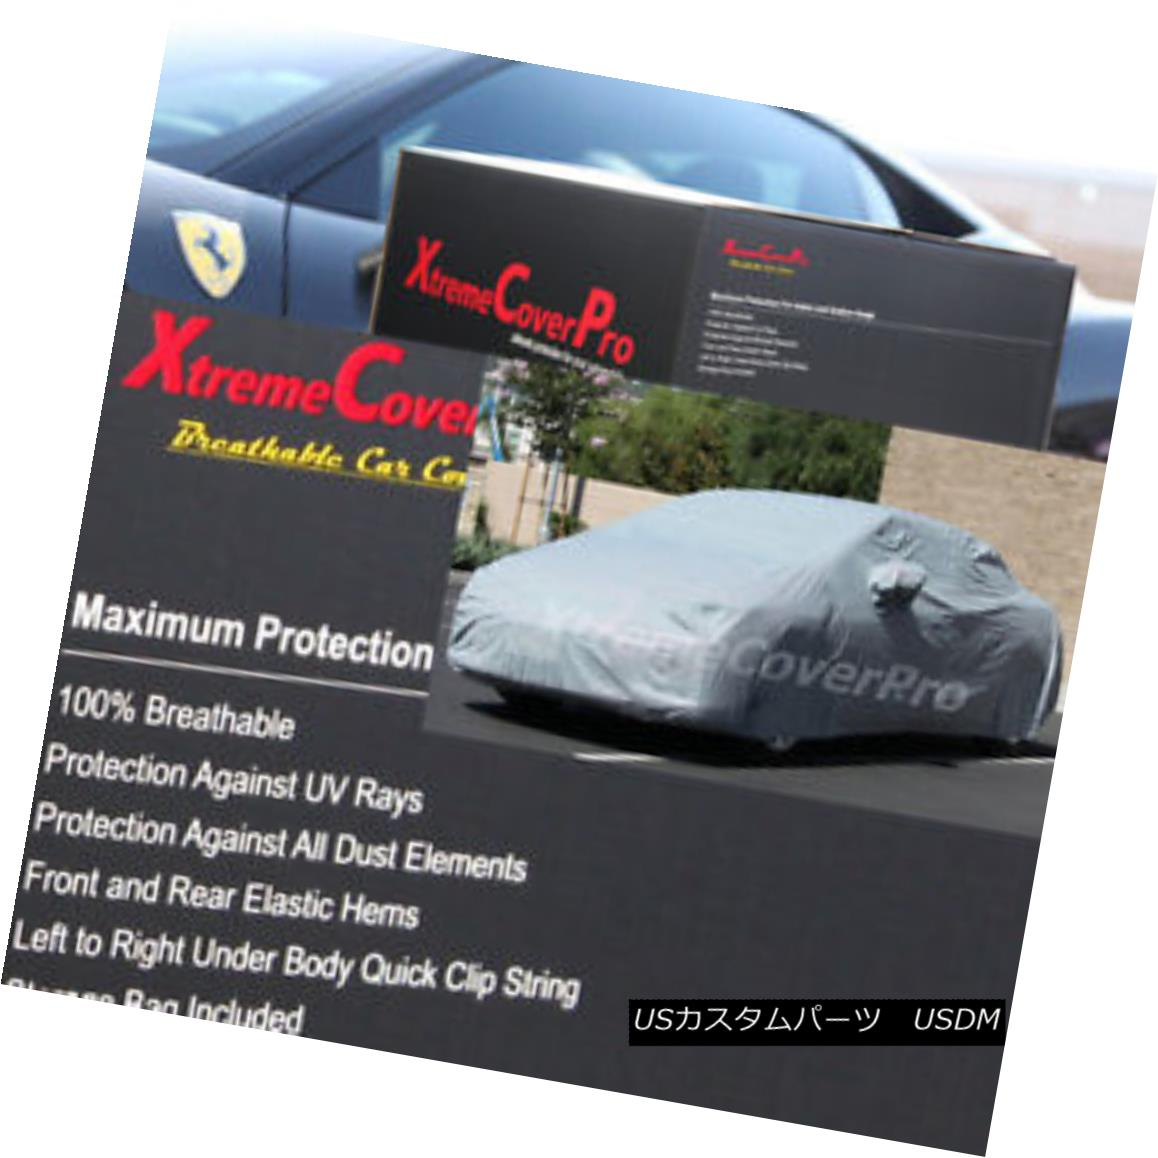 カーカバー 2002 2003 Mazda Protege5 Breathable Car Cover w/MirrorPocket 2002年Mazda Protege5通気性車カバー付きMirrorPocket